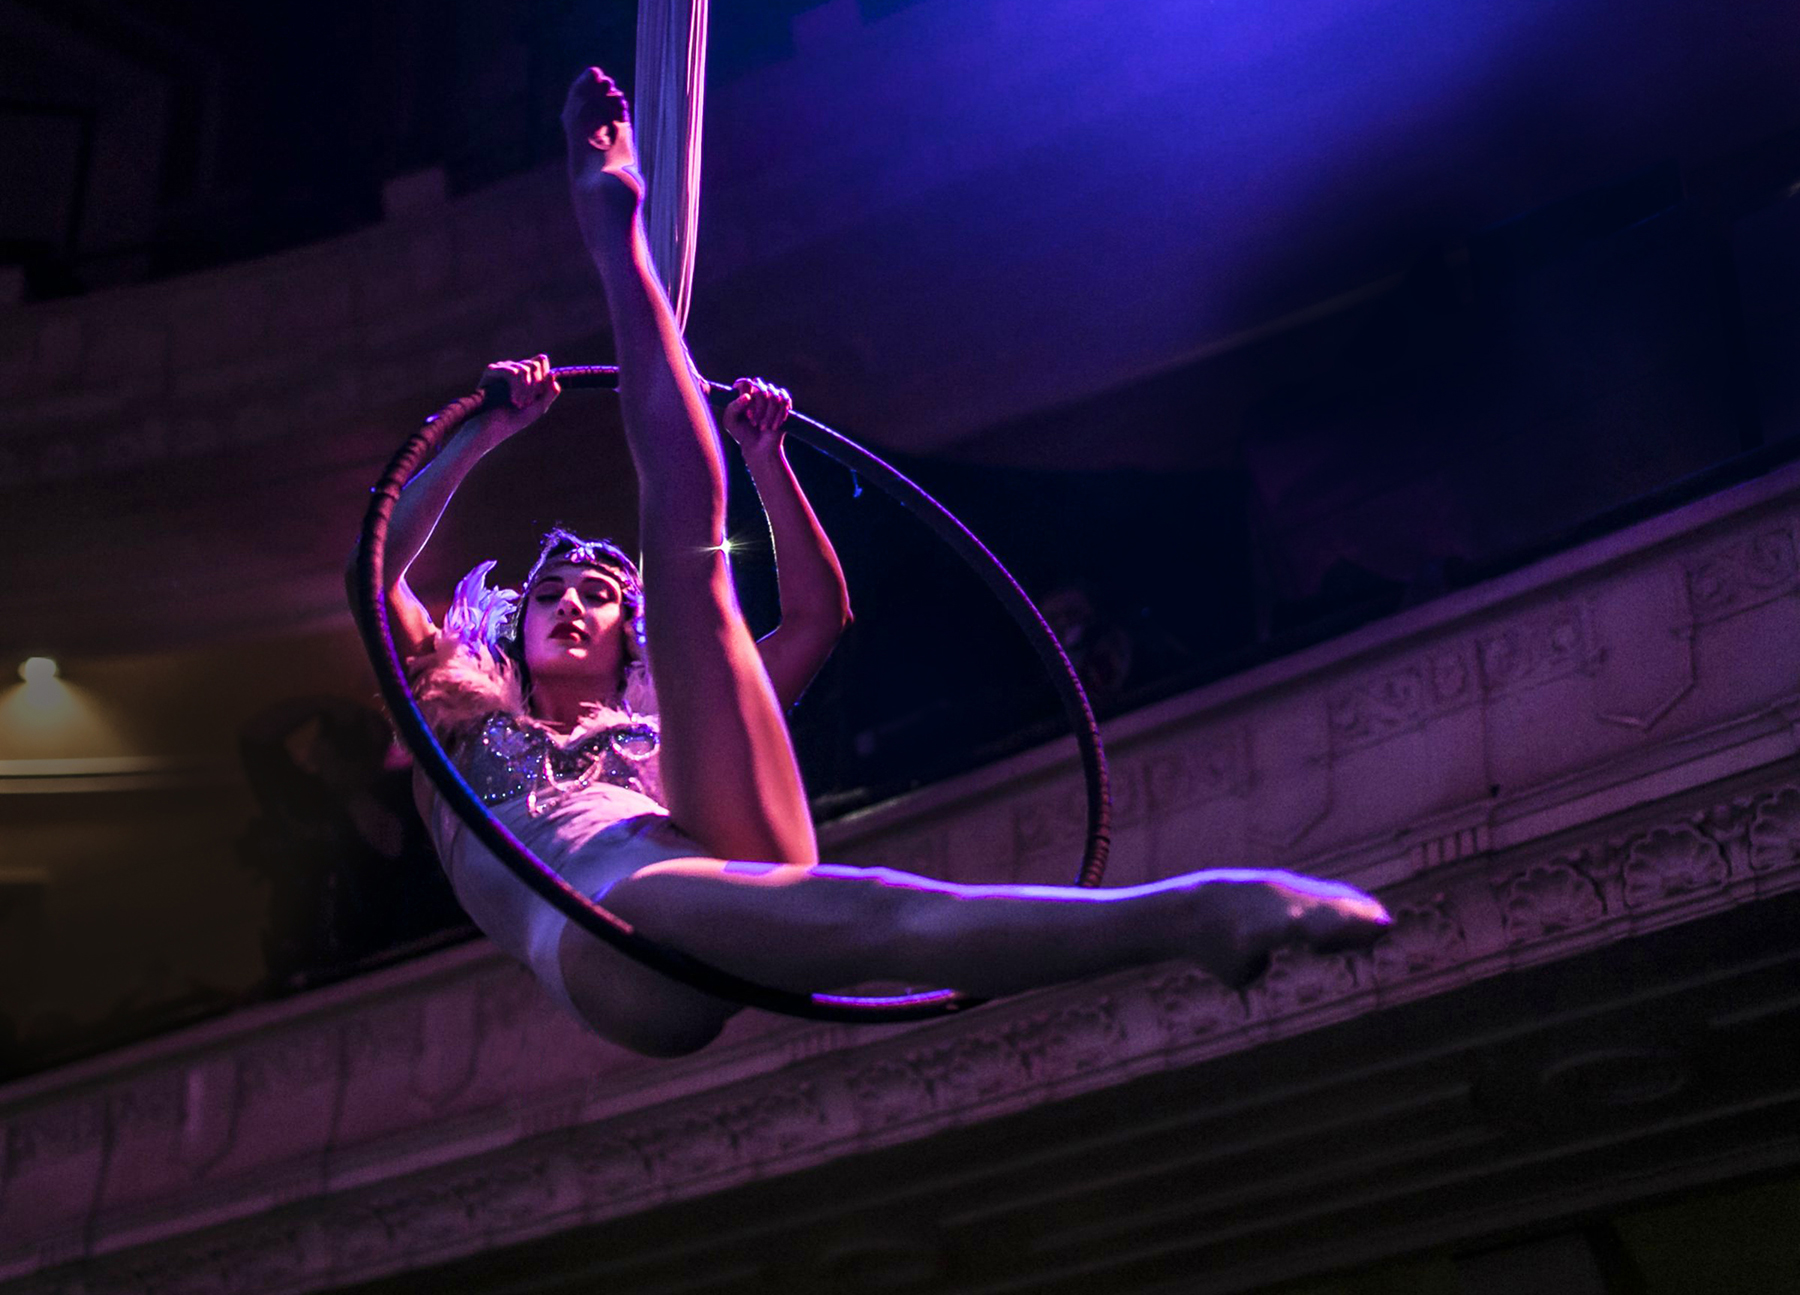 Aerialist Photo by Mark Shelby Perrry